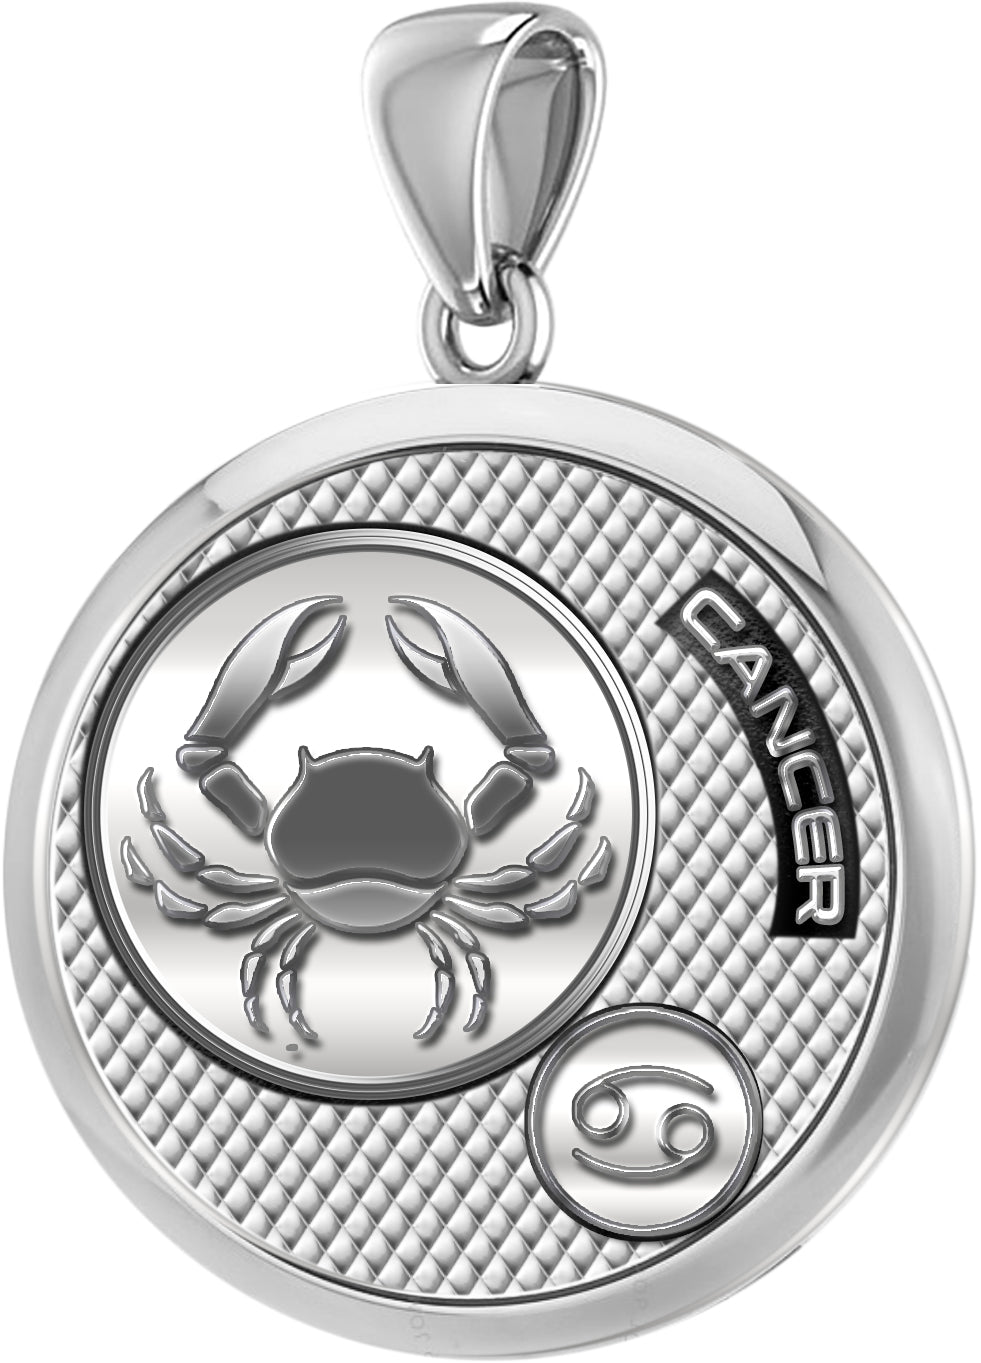 Zodiac Cancer Necklace In 925 Silver - Pendant Only